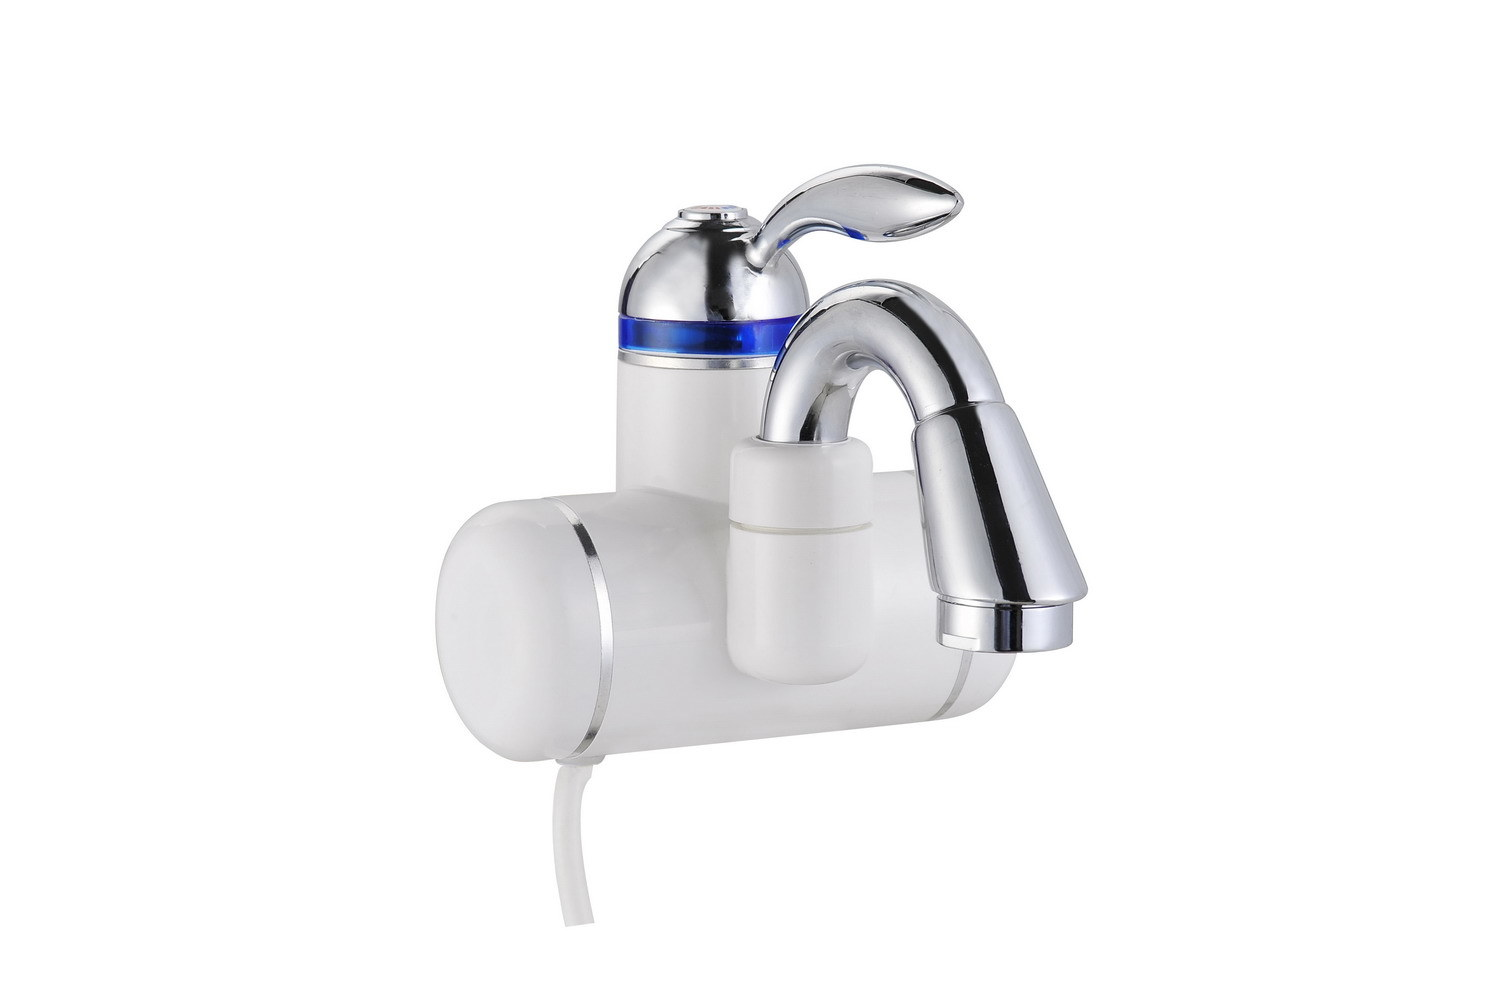 China Instant Hot Water Faucet Yz 104 China Instant Electric Water Heater Tap Instant